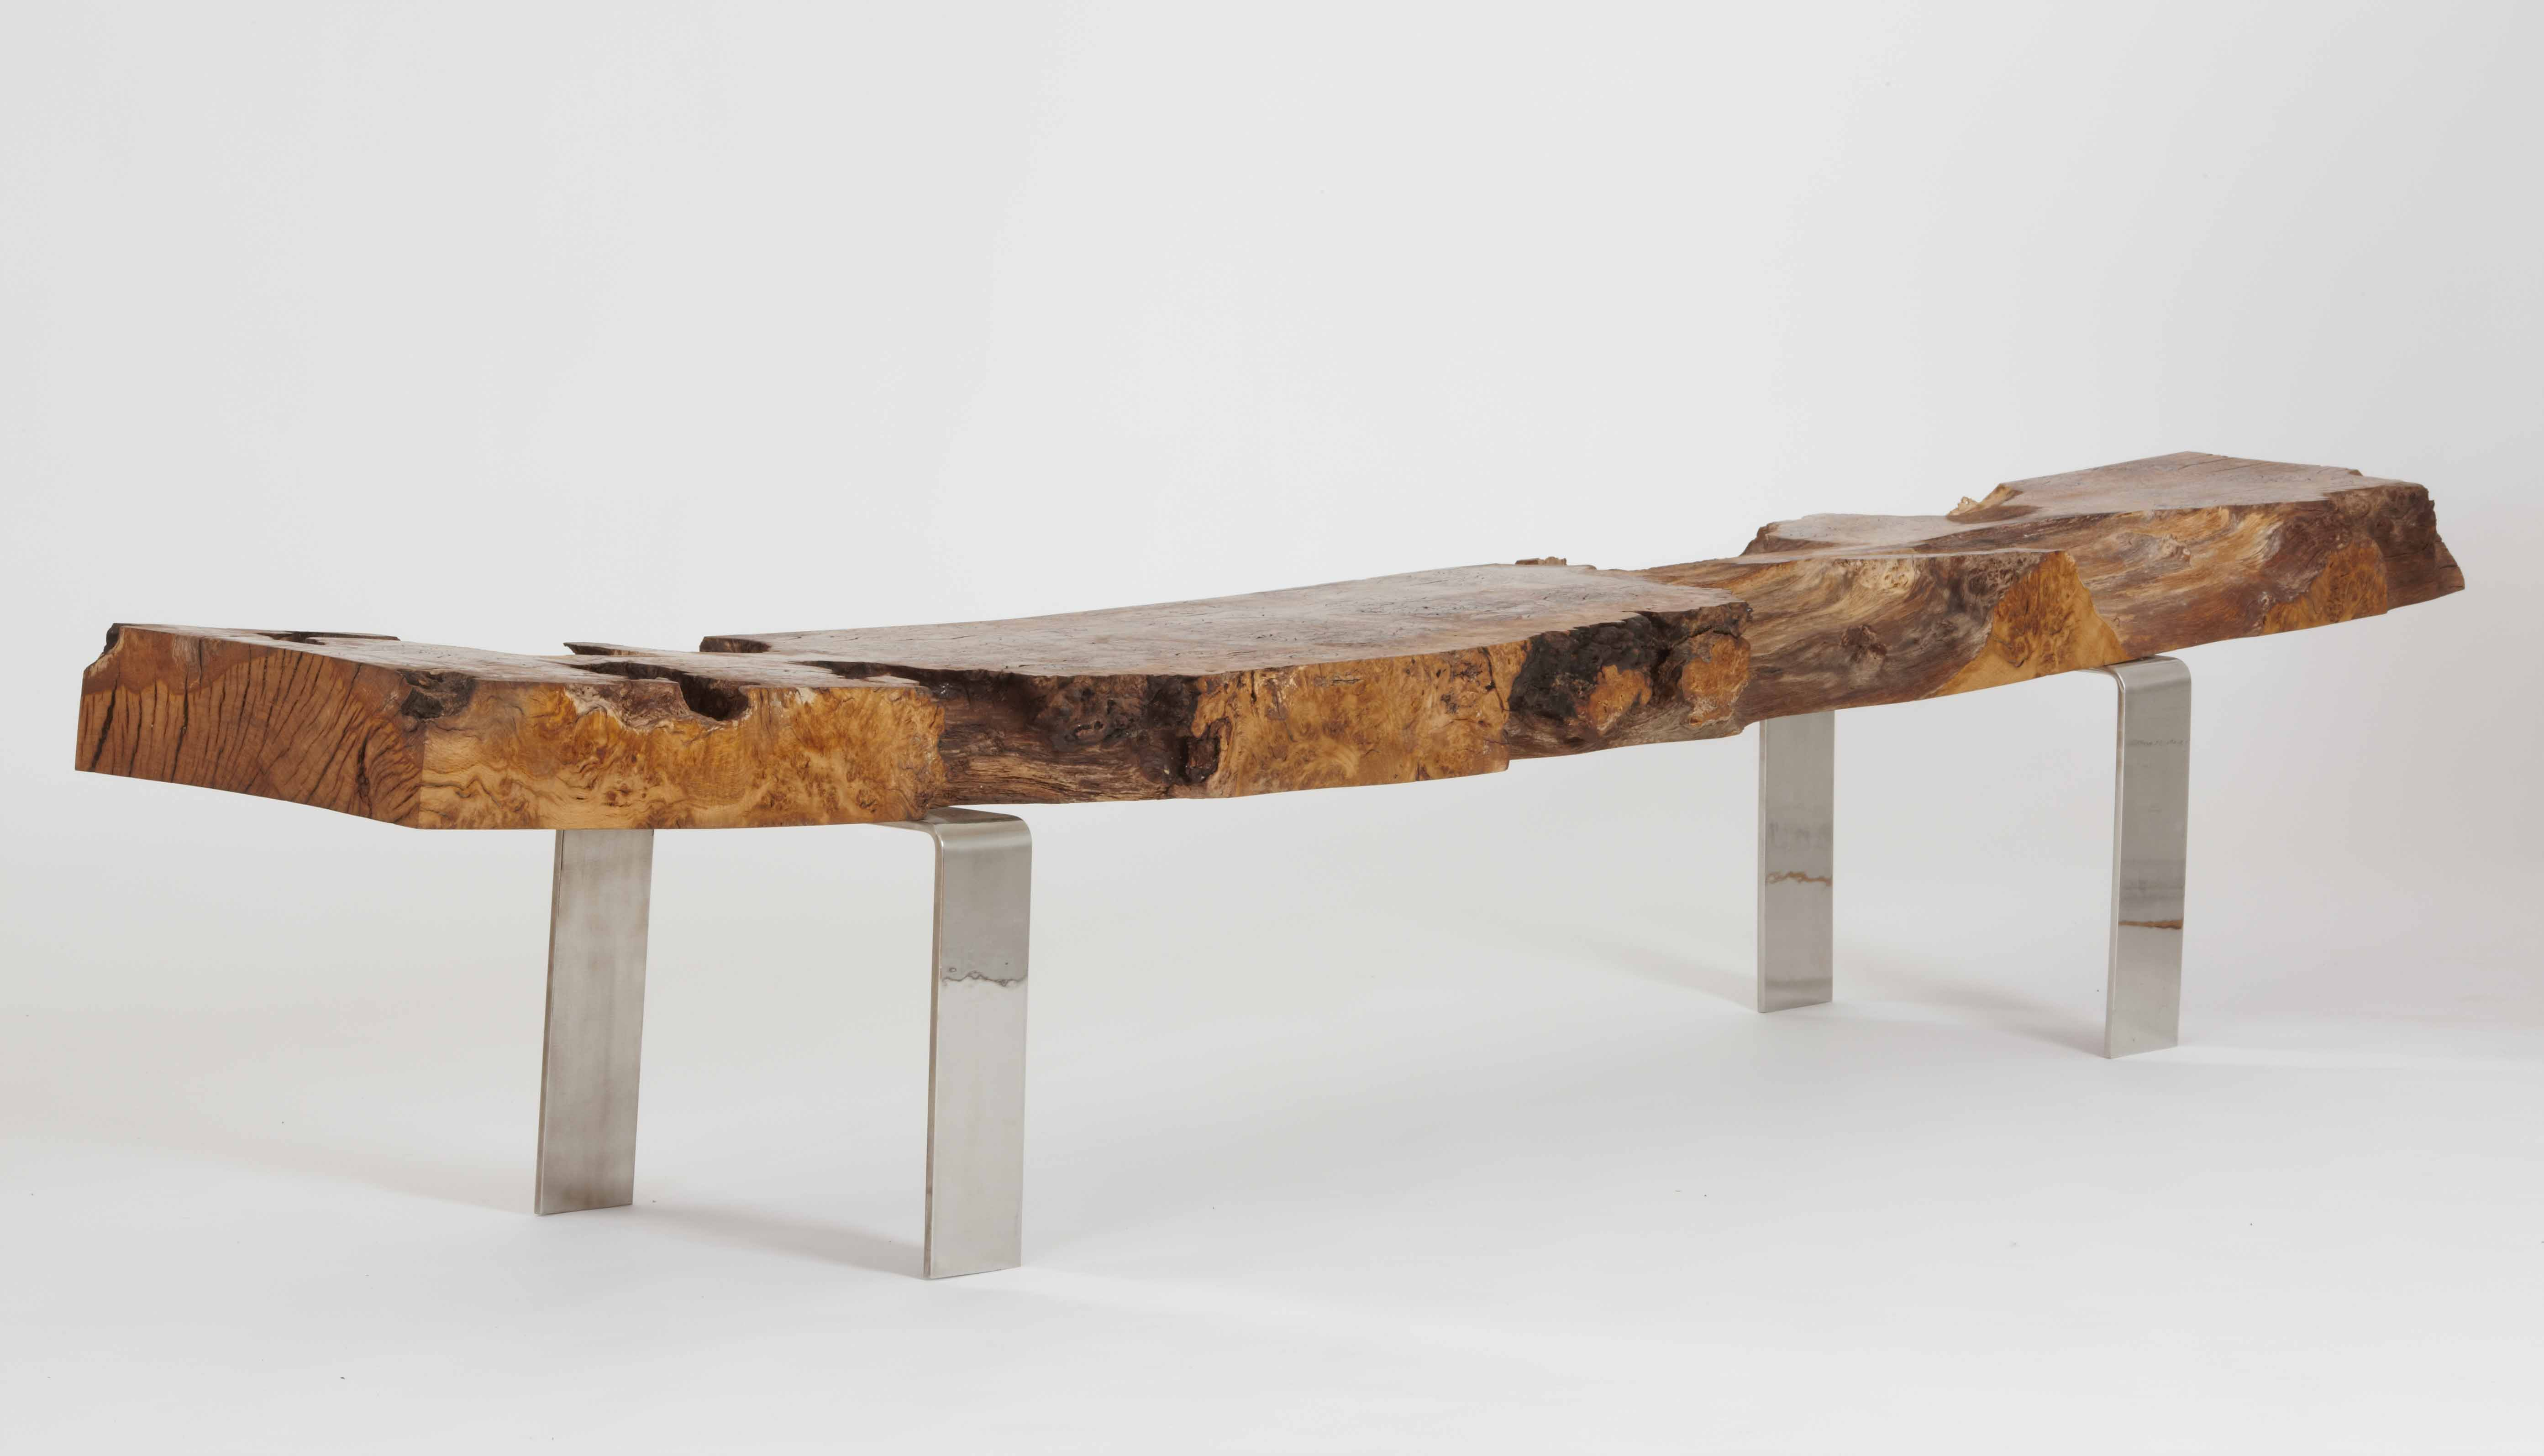 Wood & metal – a fusion of strength & beauty